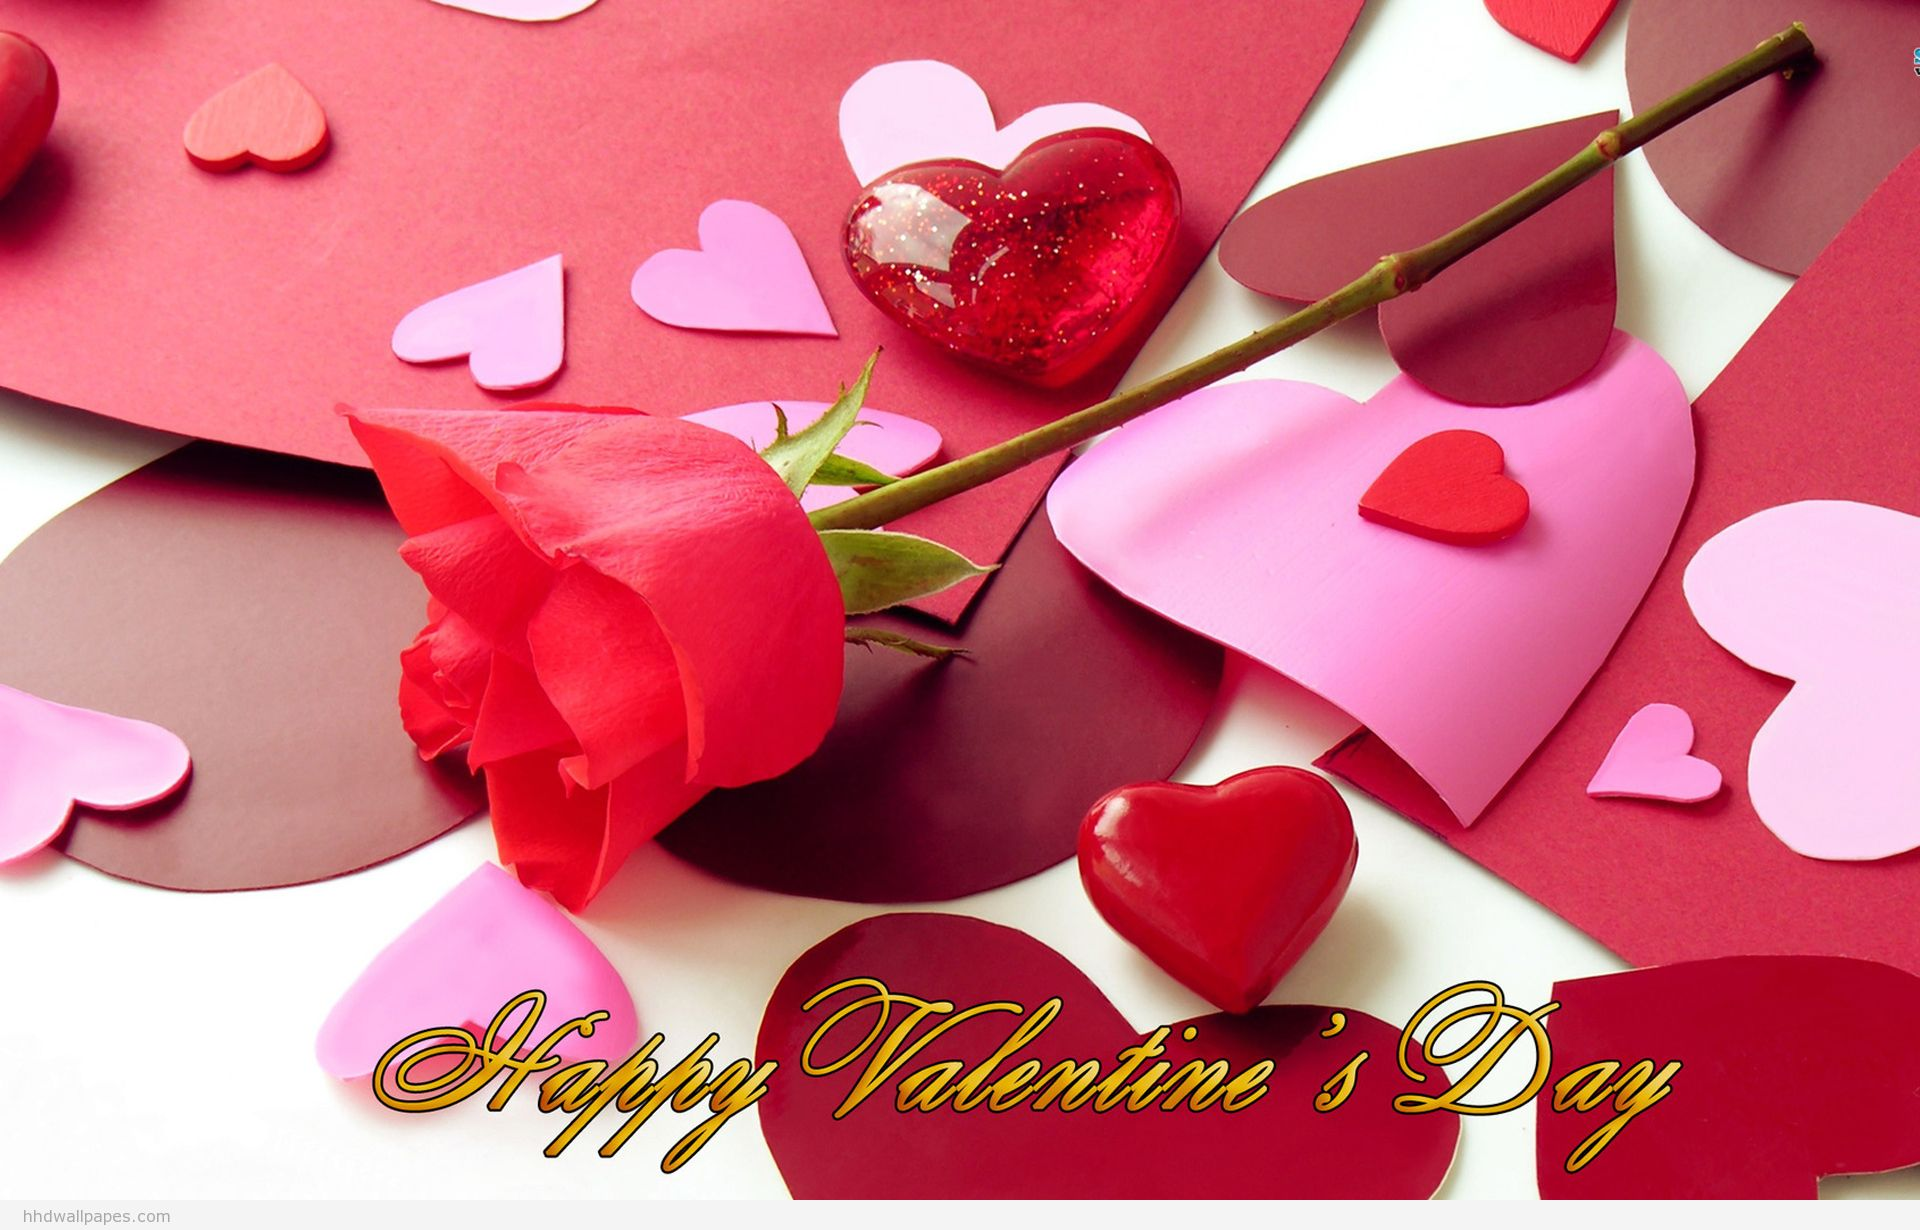 hapy valentines day quotes for girlfriend